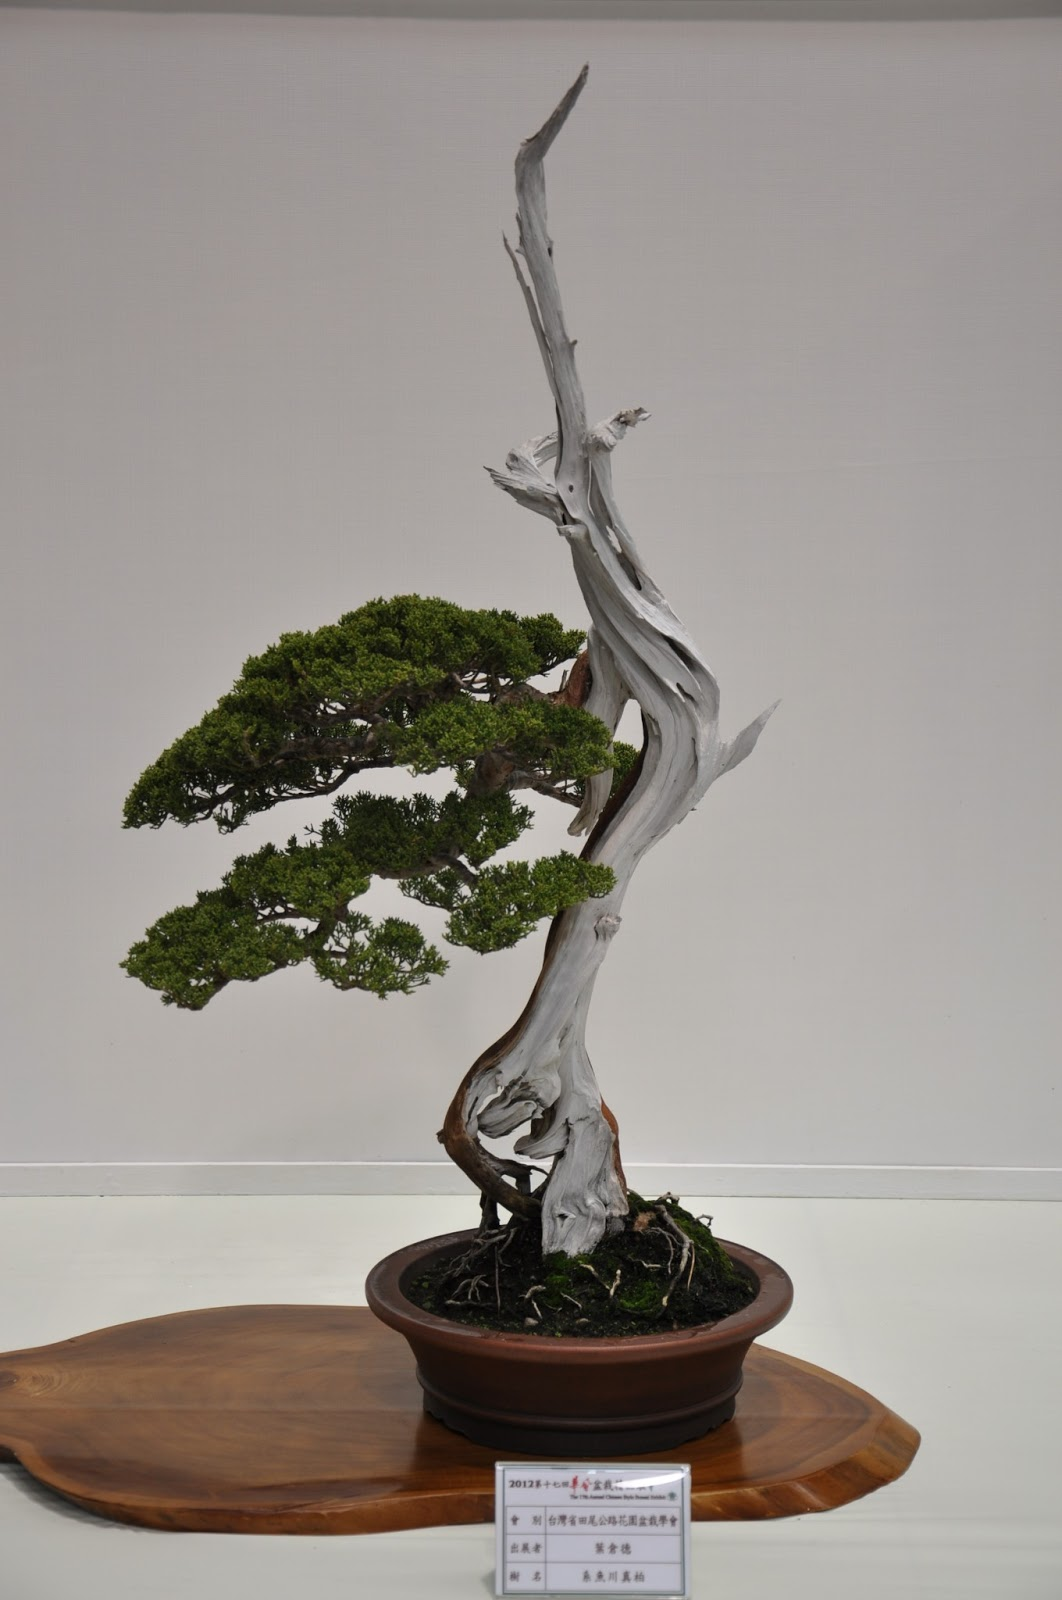 All In One Bonsai And Ceramics History Of Bonsai